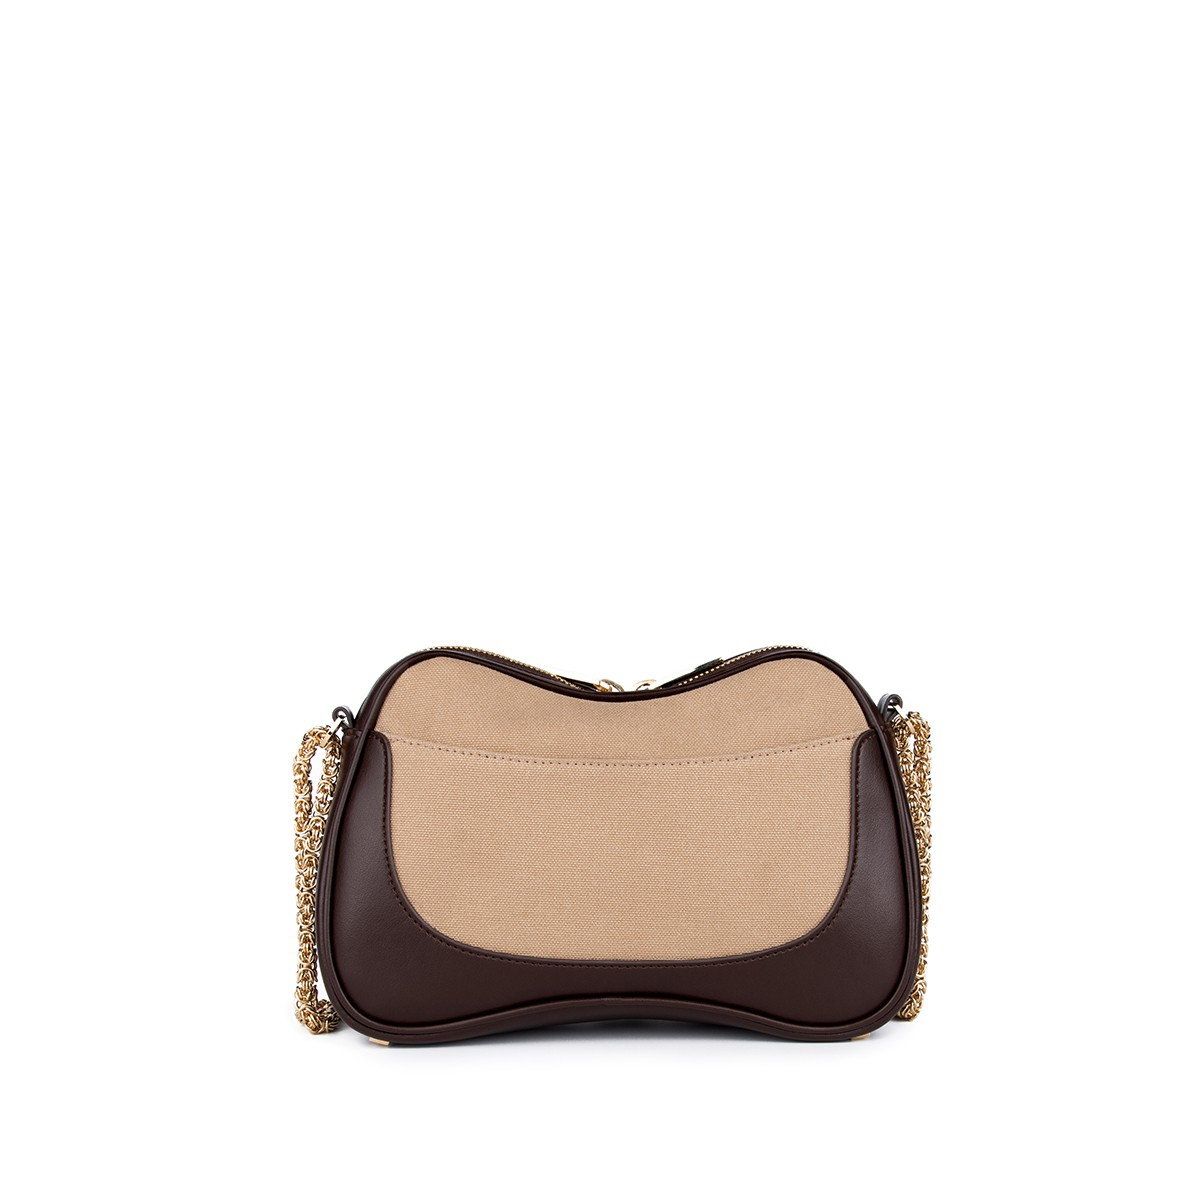 Doina in Brown and Beige4